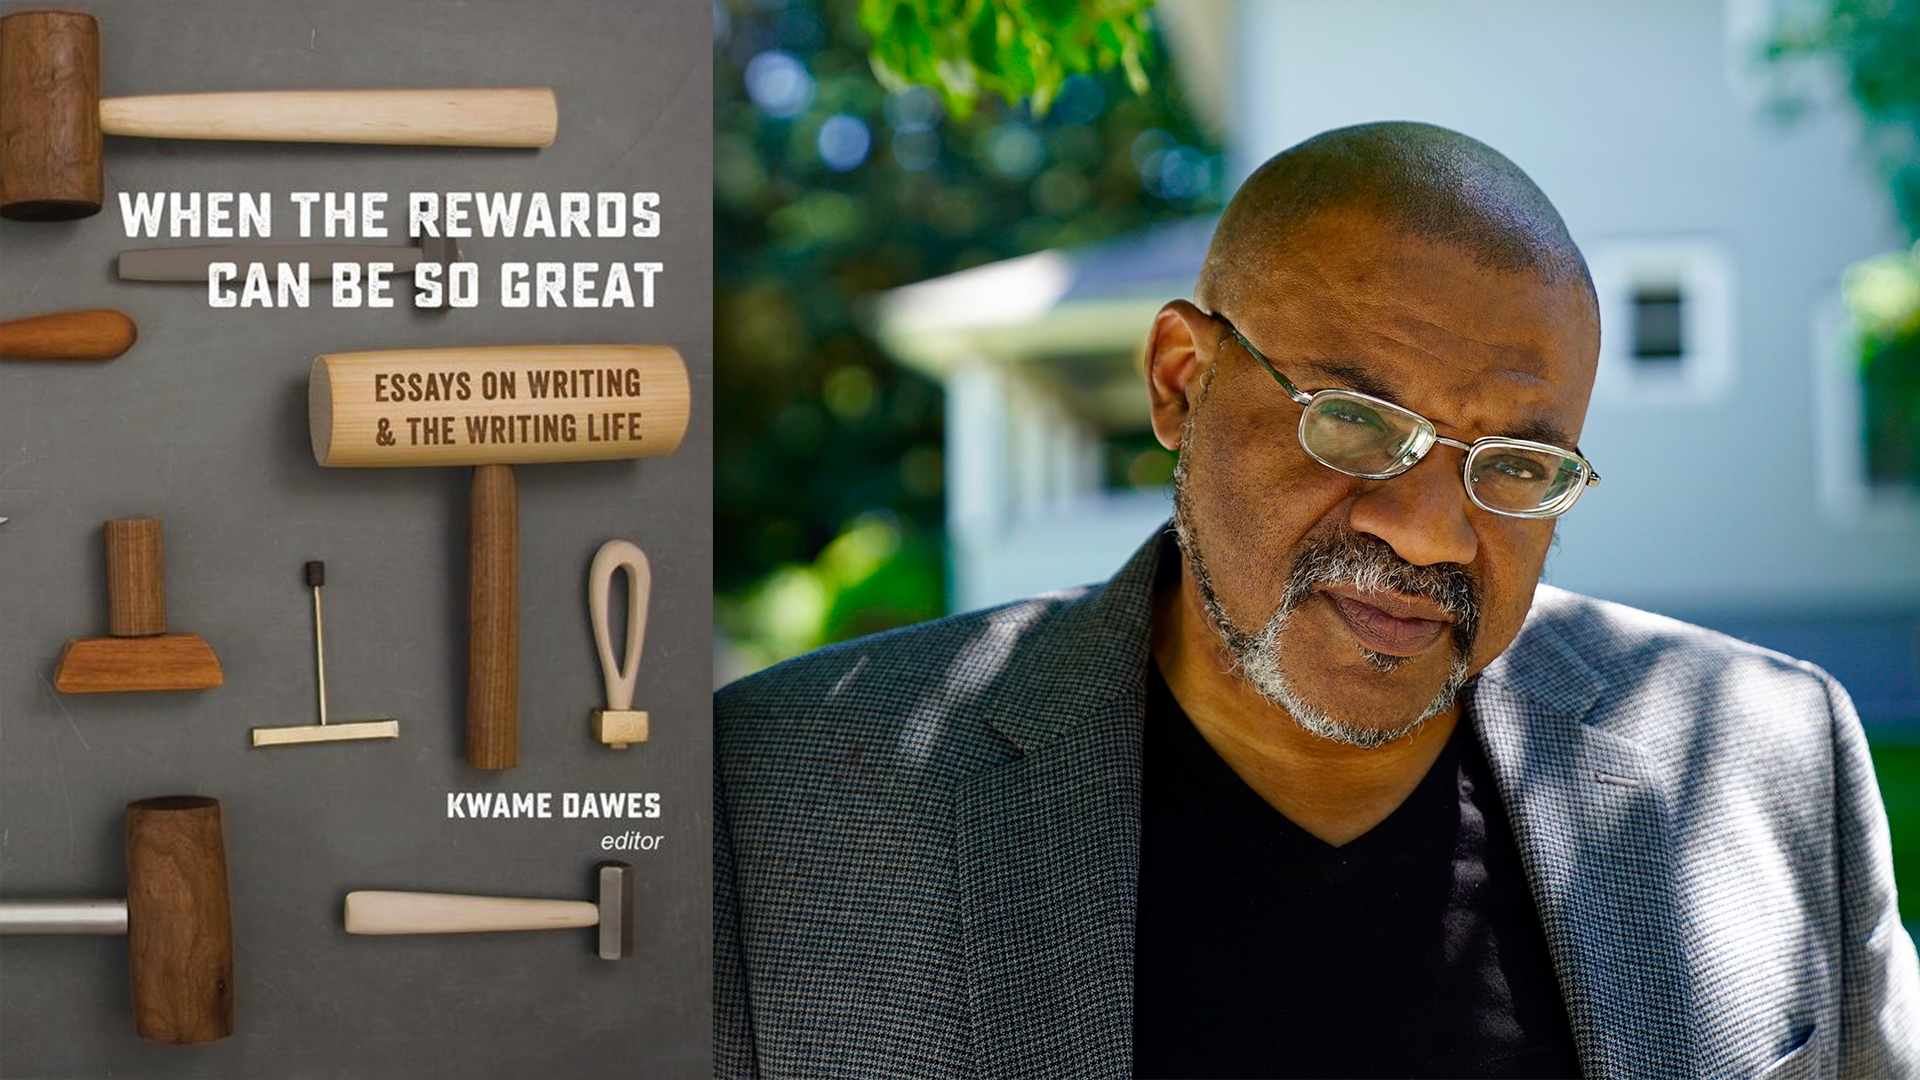 Kwame Dawes and the cover of WHEN THE REWARDS CAN BE SO GREAT